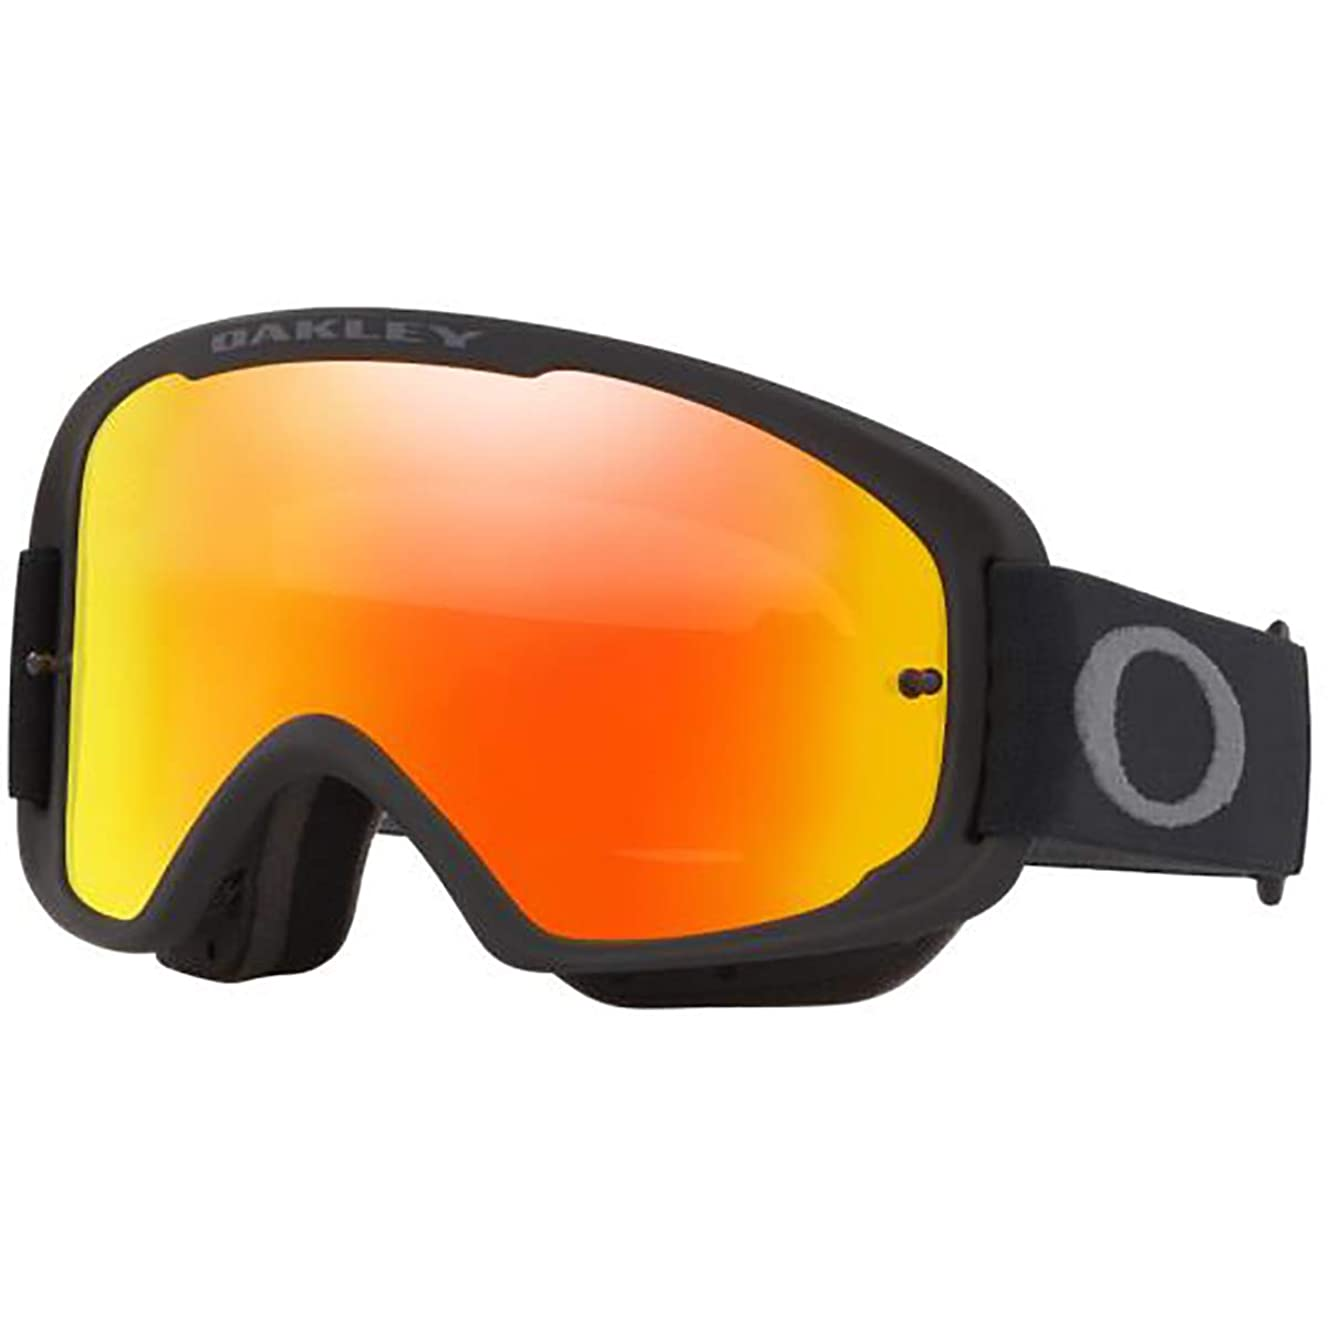 Oakley O-Frame 2.0 Men's MTB Off-Road Cycling Goggles - Matte Black/Fire Iridium & Clear/One Size